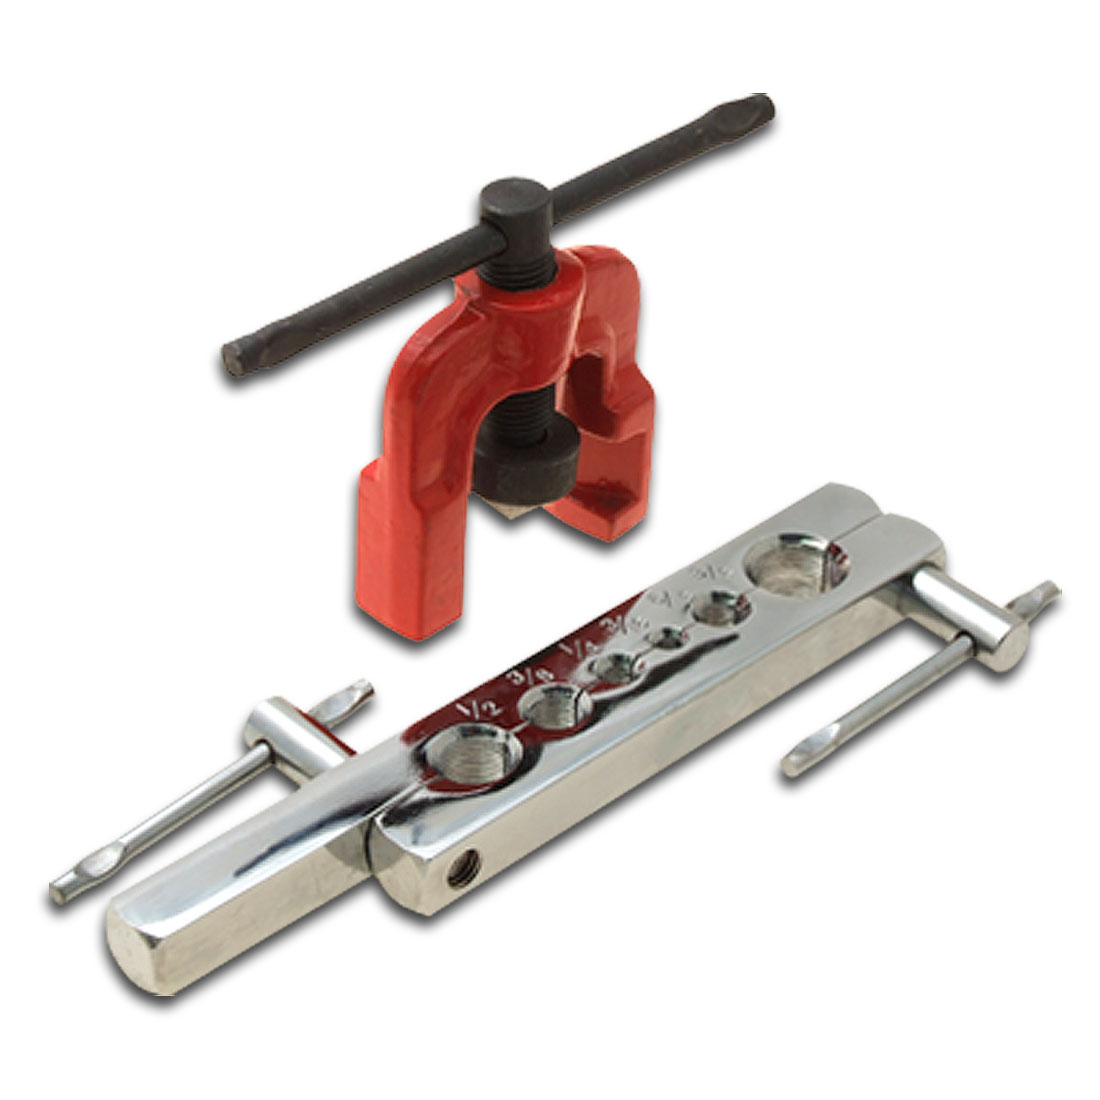 Air-condition Automobile Brake Tubing Flaring Tool (UK Model)